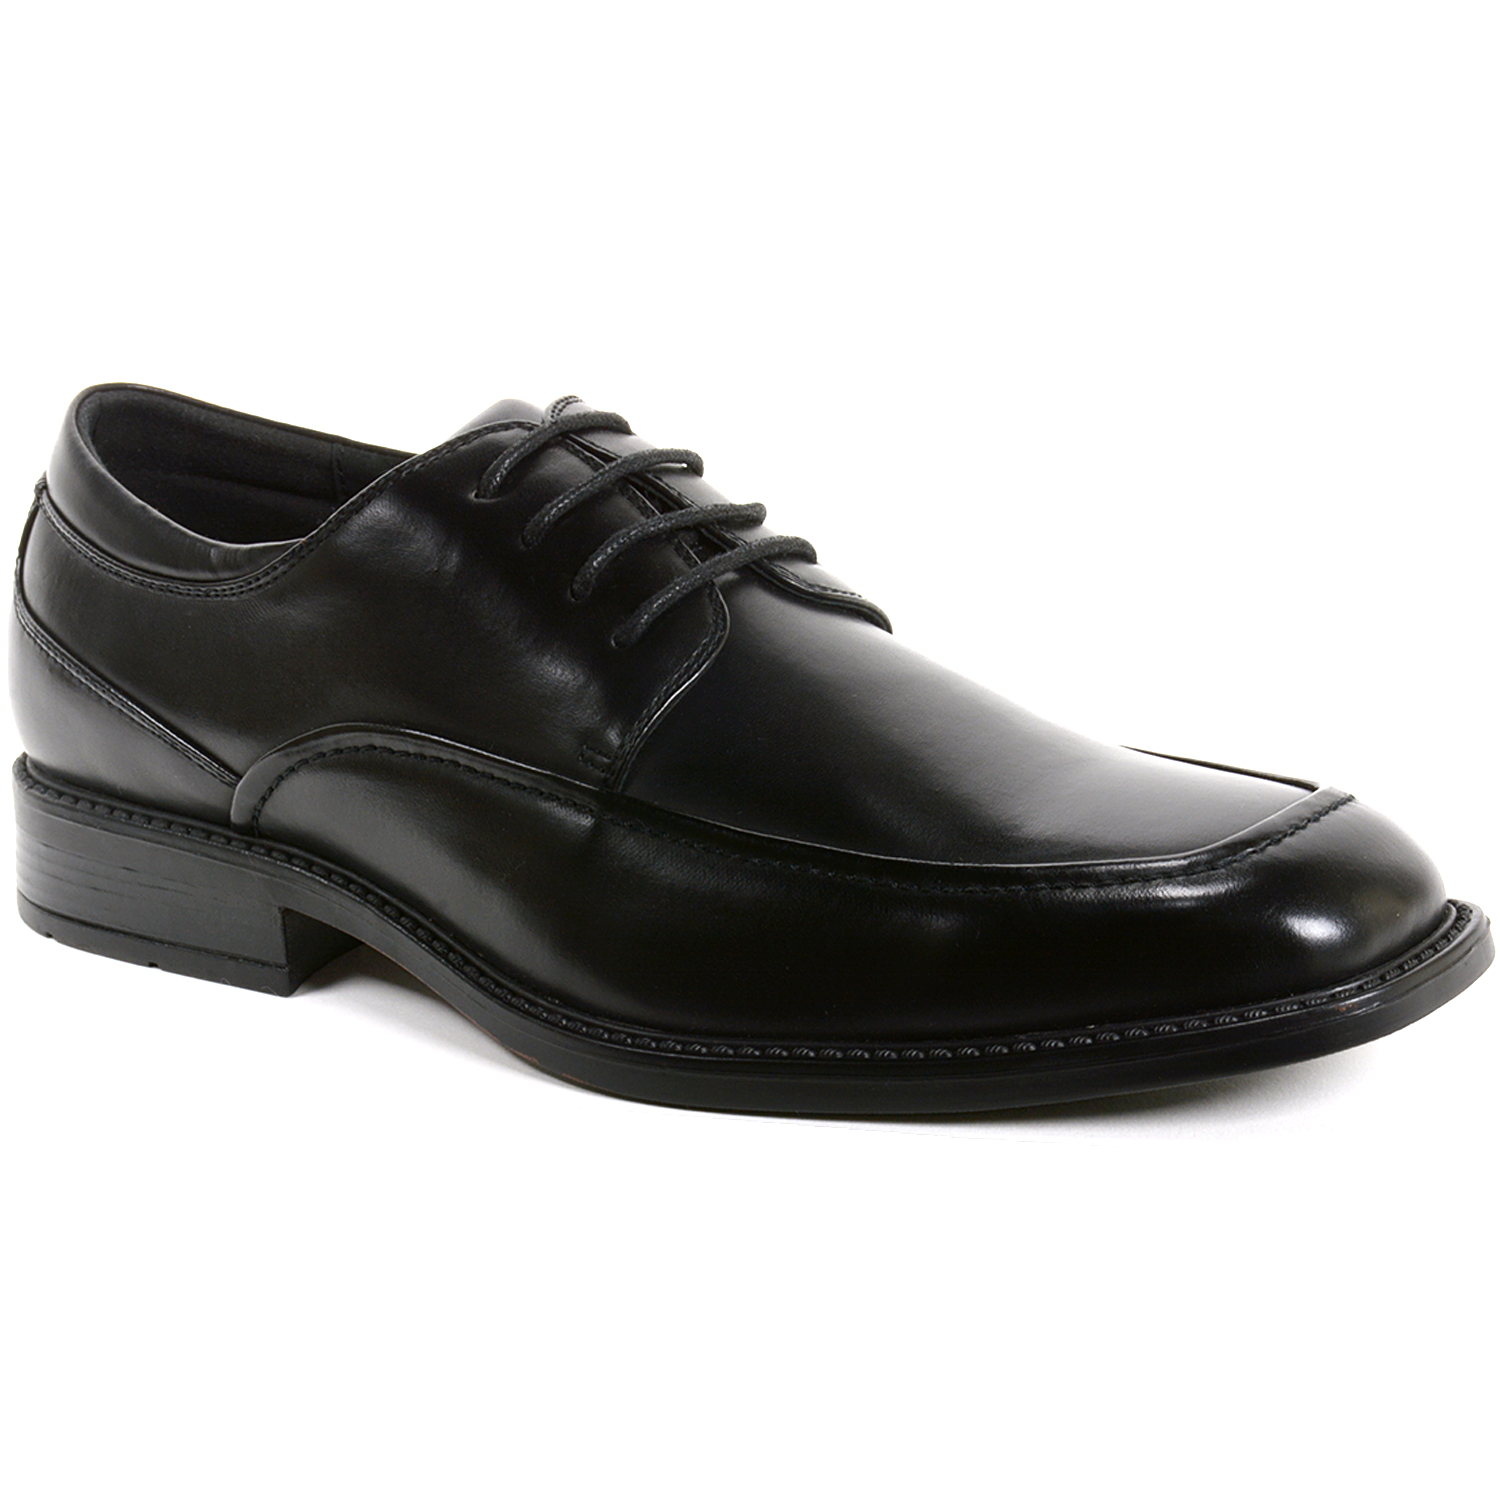 deals cheap price good selling online Fuel Office Artificial Leather Black Formal Shoes vbLam